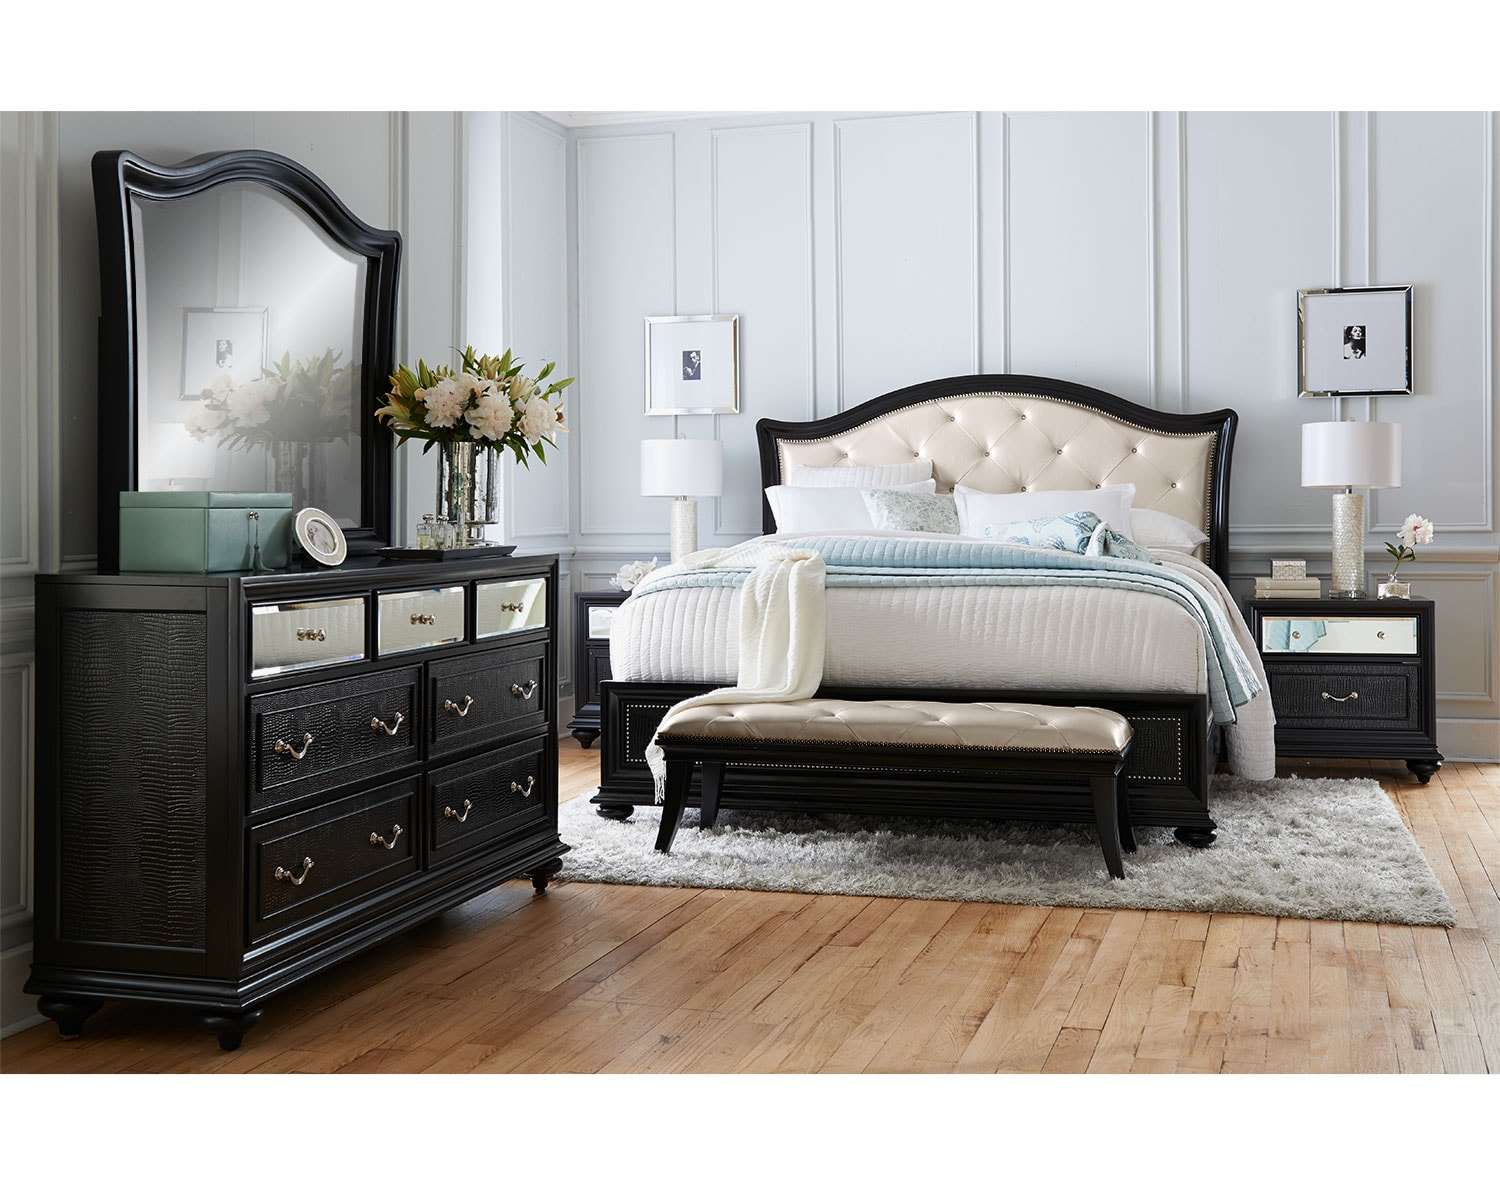 city furniture bedroom set. The Marilyn Collection  Ebony Value City Furniture and Mattresses